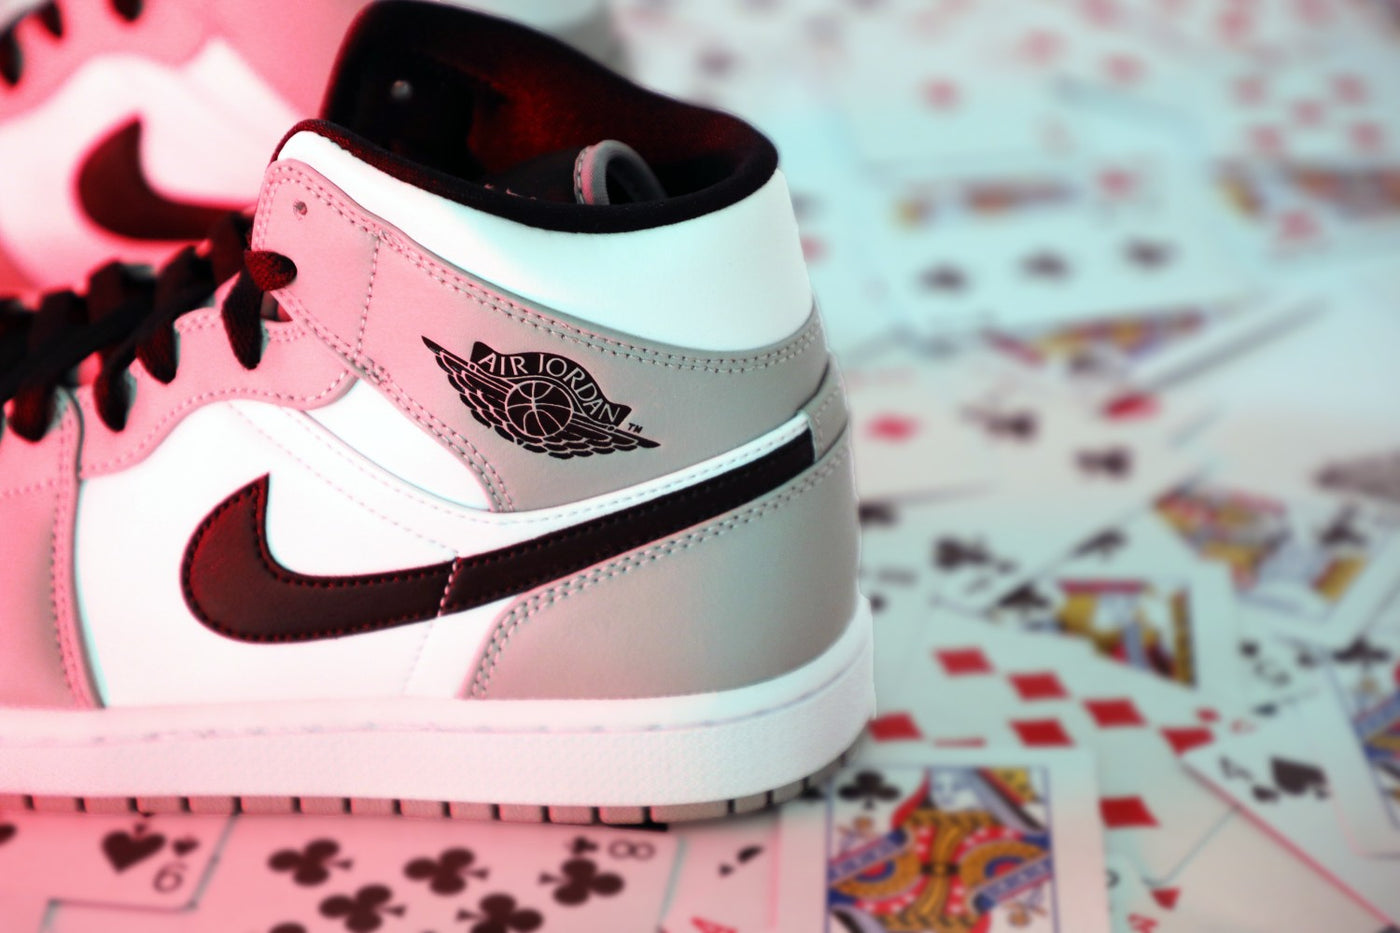 25 Fun Facts You Did Not Know About Sneakers